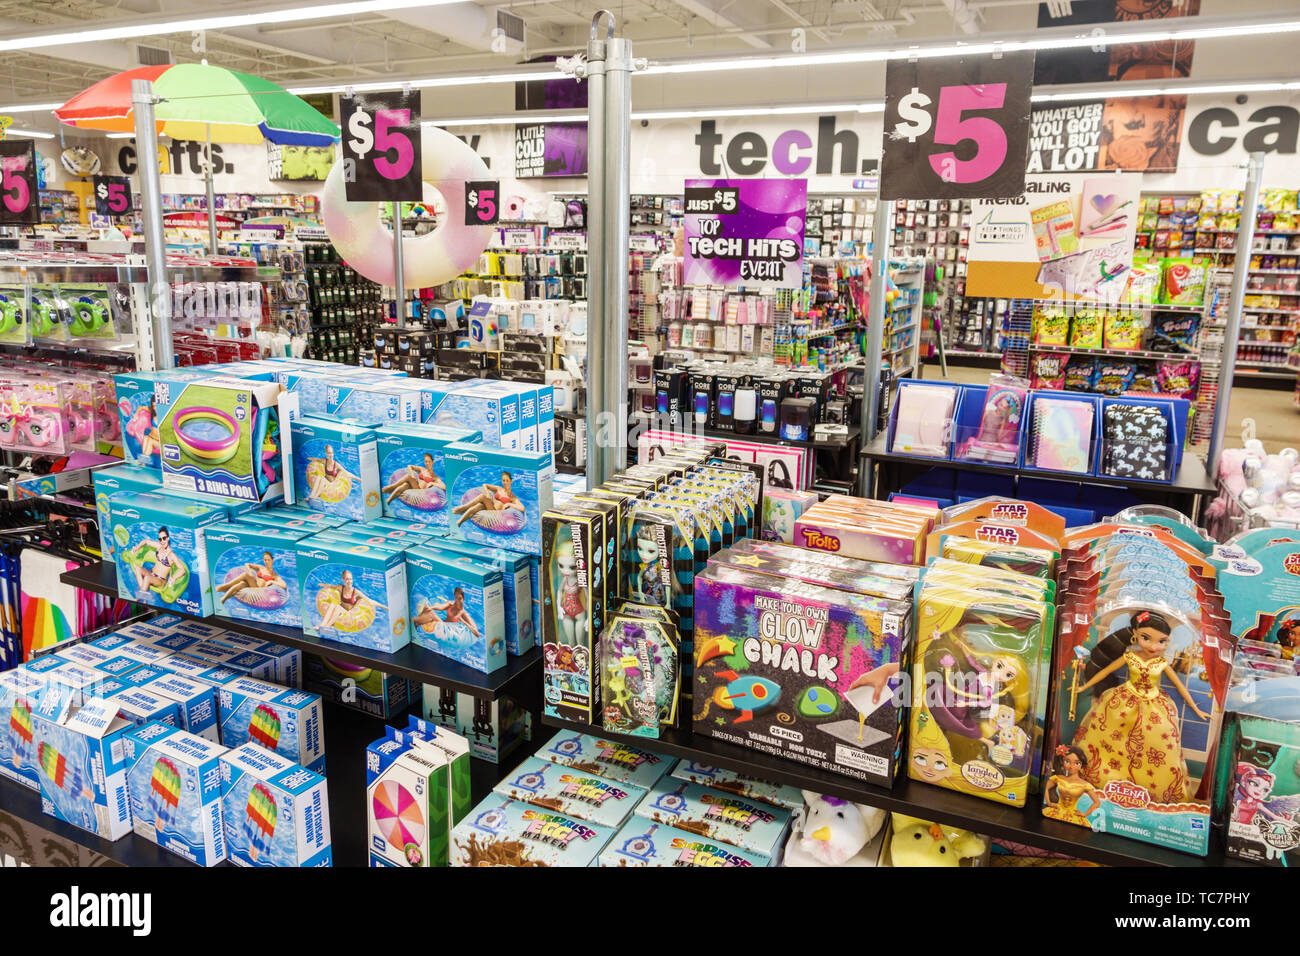 Miami Florida Five Below discount variety store inside shopping display sale inside toys floats inexpensive cheap goods - Stock Image